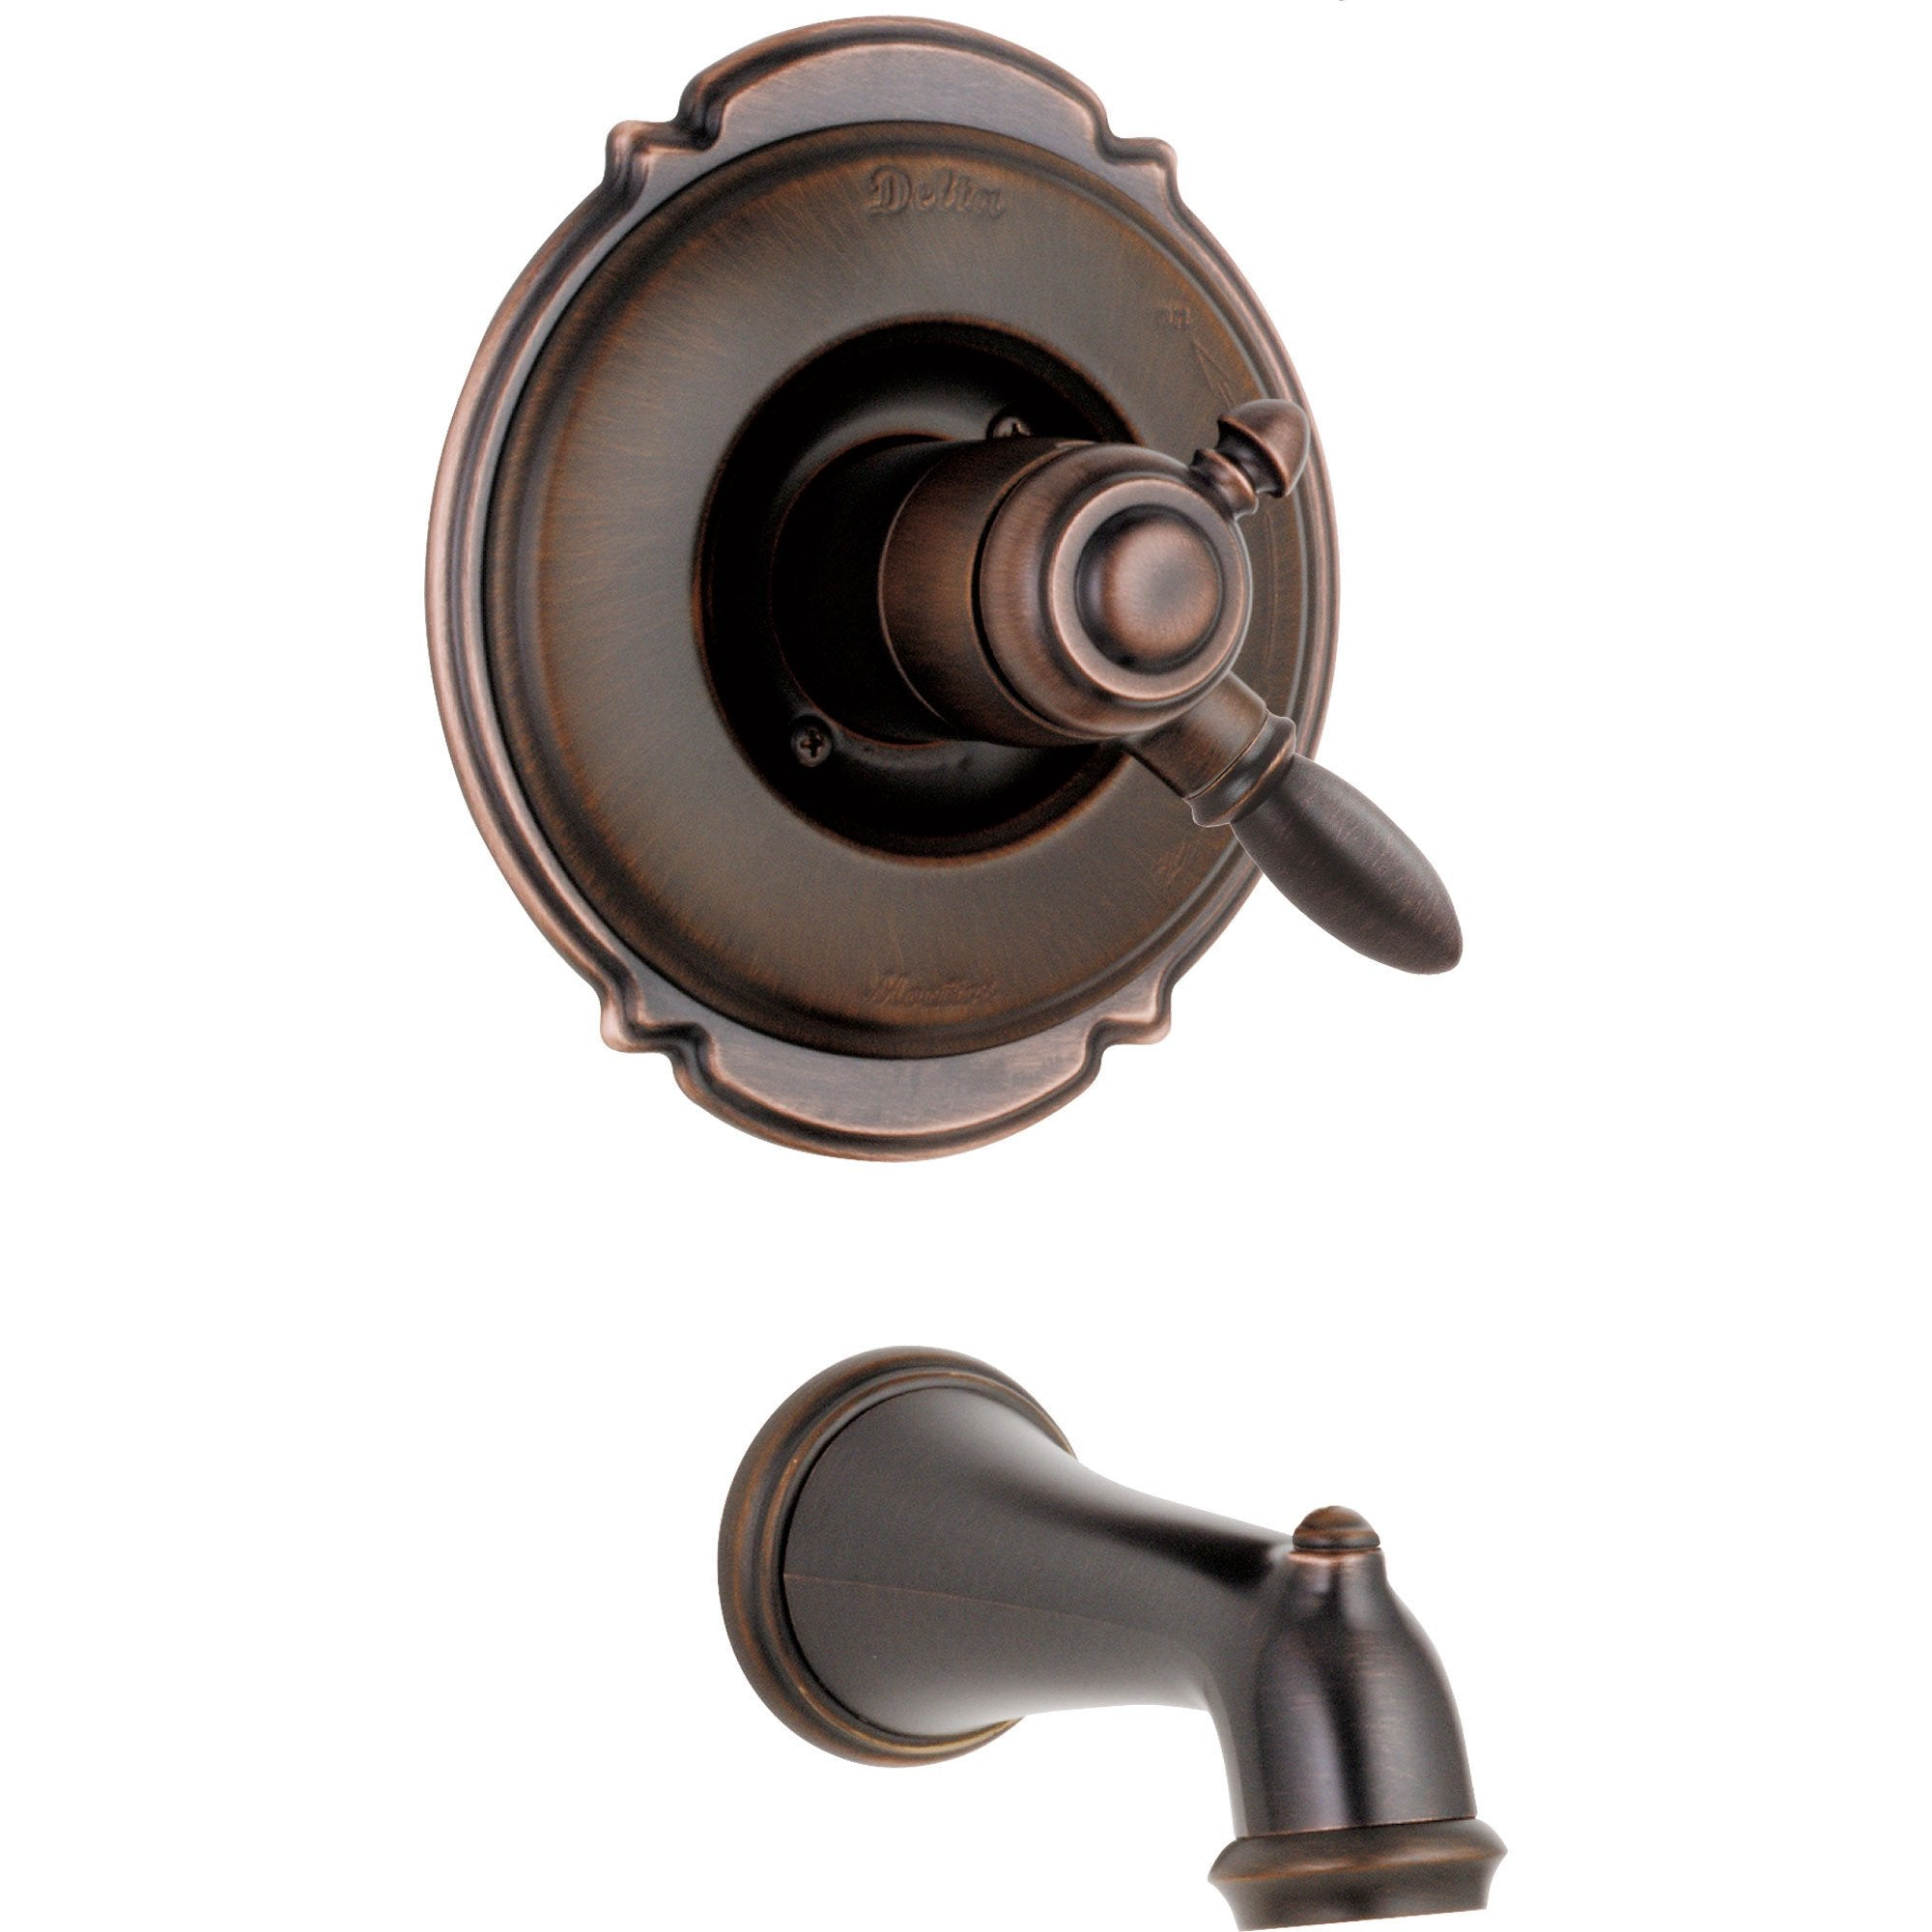 Delta Victorian Venetian Bronze Temp/Volume Control Tub Filler with Valve D220V